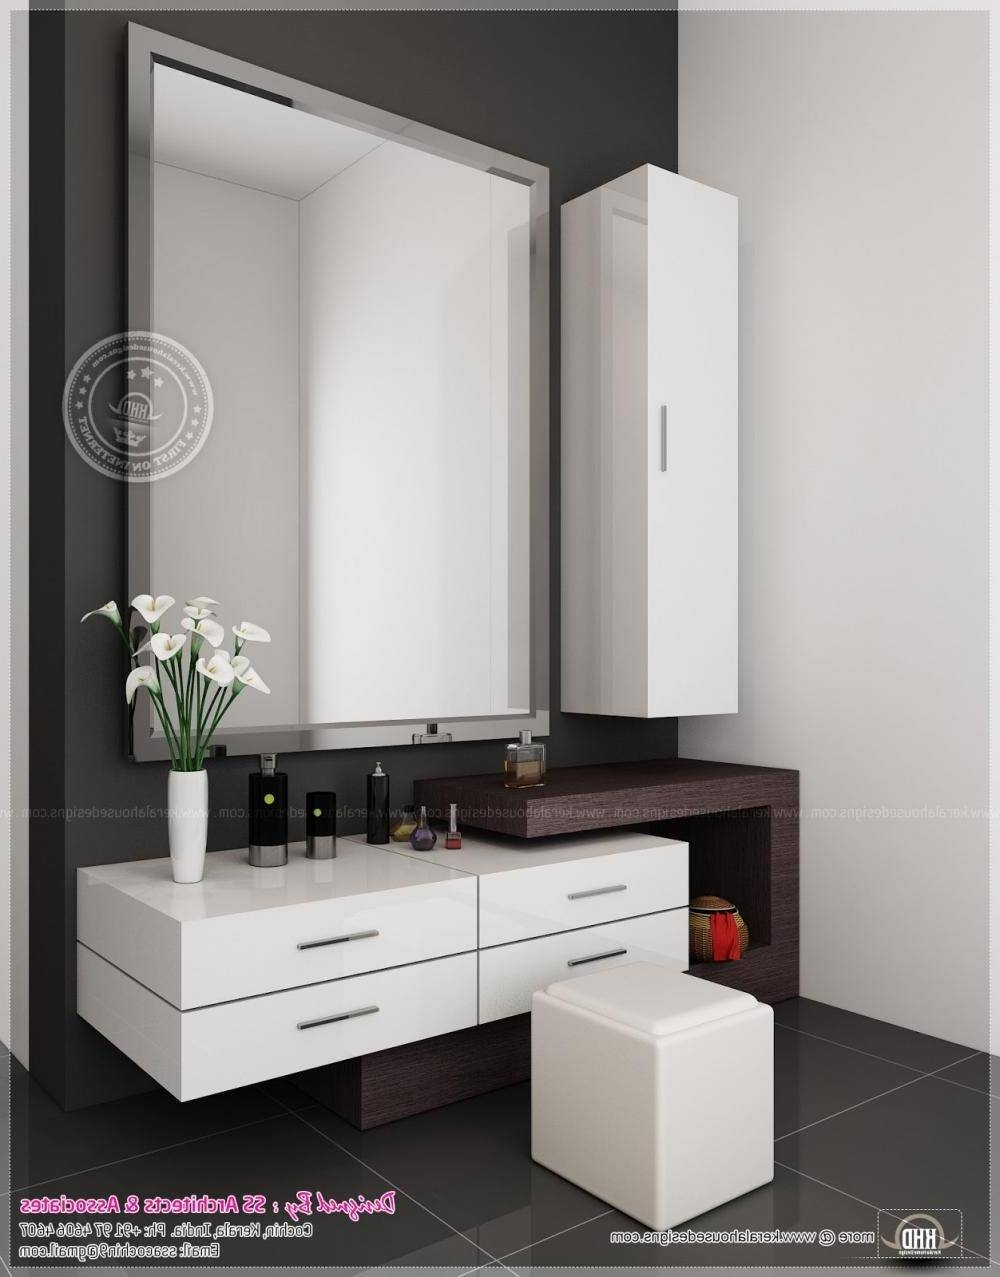 Dressing Table Designs With Long Mirror | Bedroom Design Ideas with regard to Long Dressing Mirrors (Image 6 of 15)